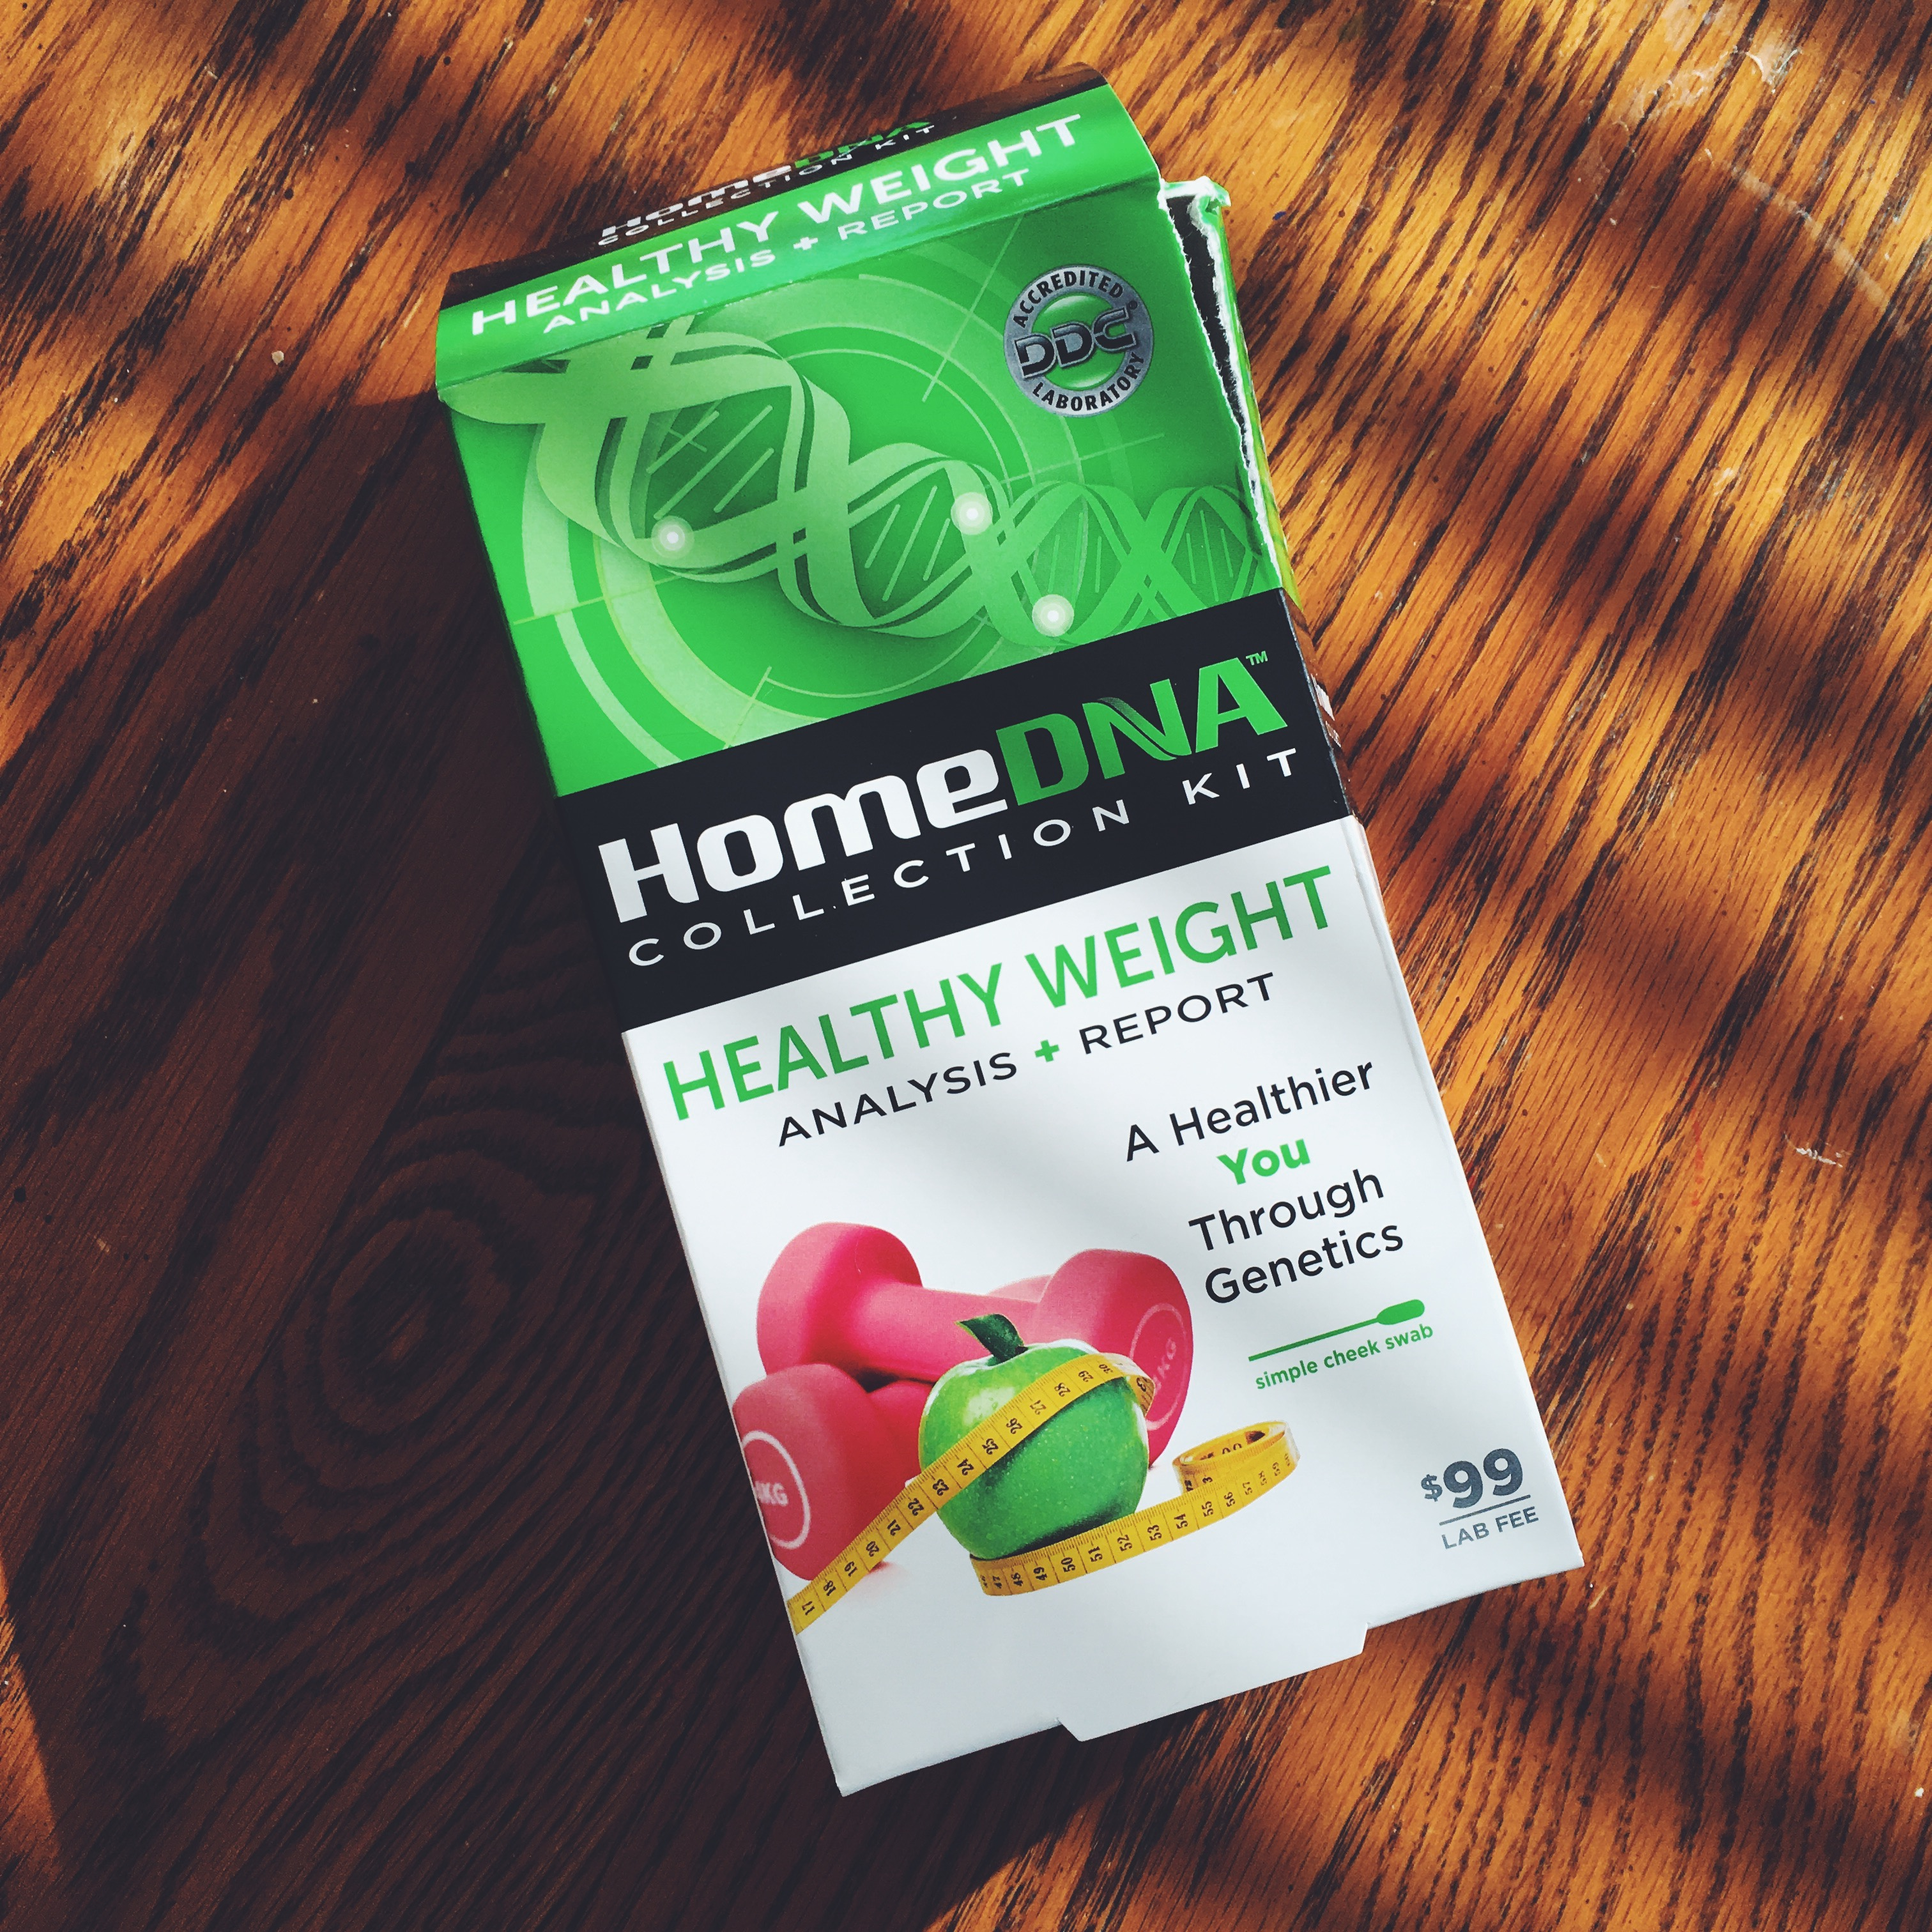 In search of a healthier life, I tried the HomeDNA Healthy Weight kit, which was sent for review, and am fascinated by my personalized report, which includes a custom diet and exercise plan.